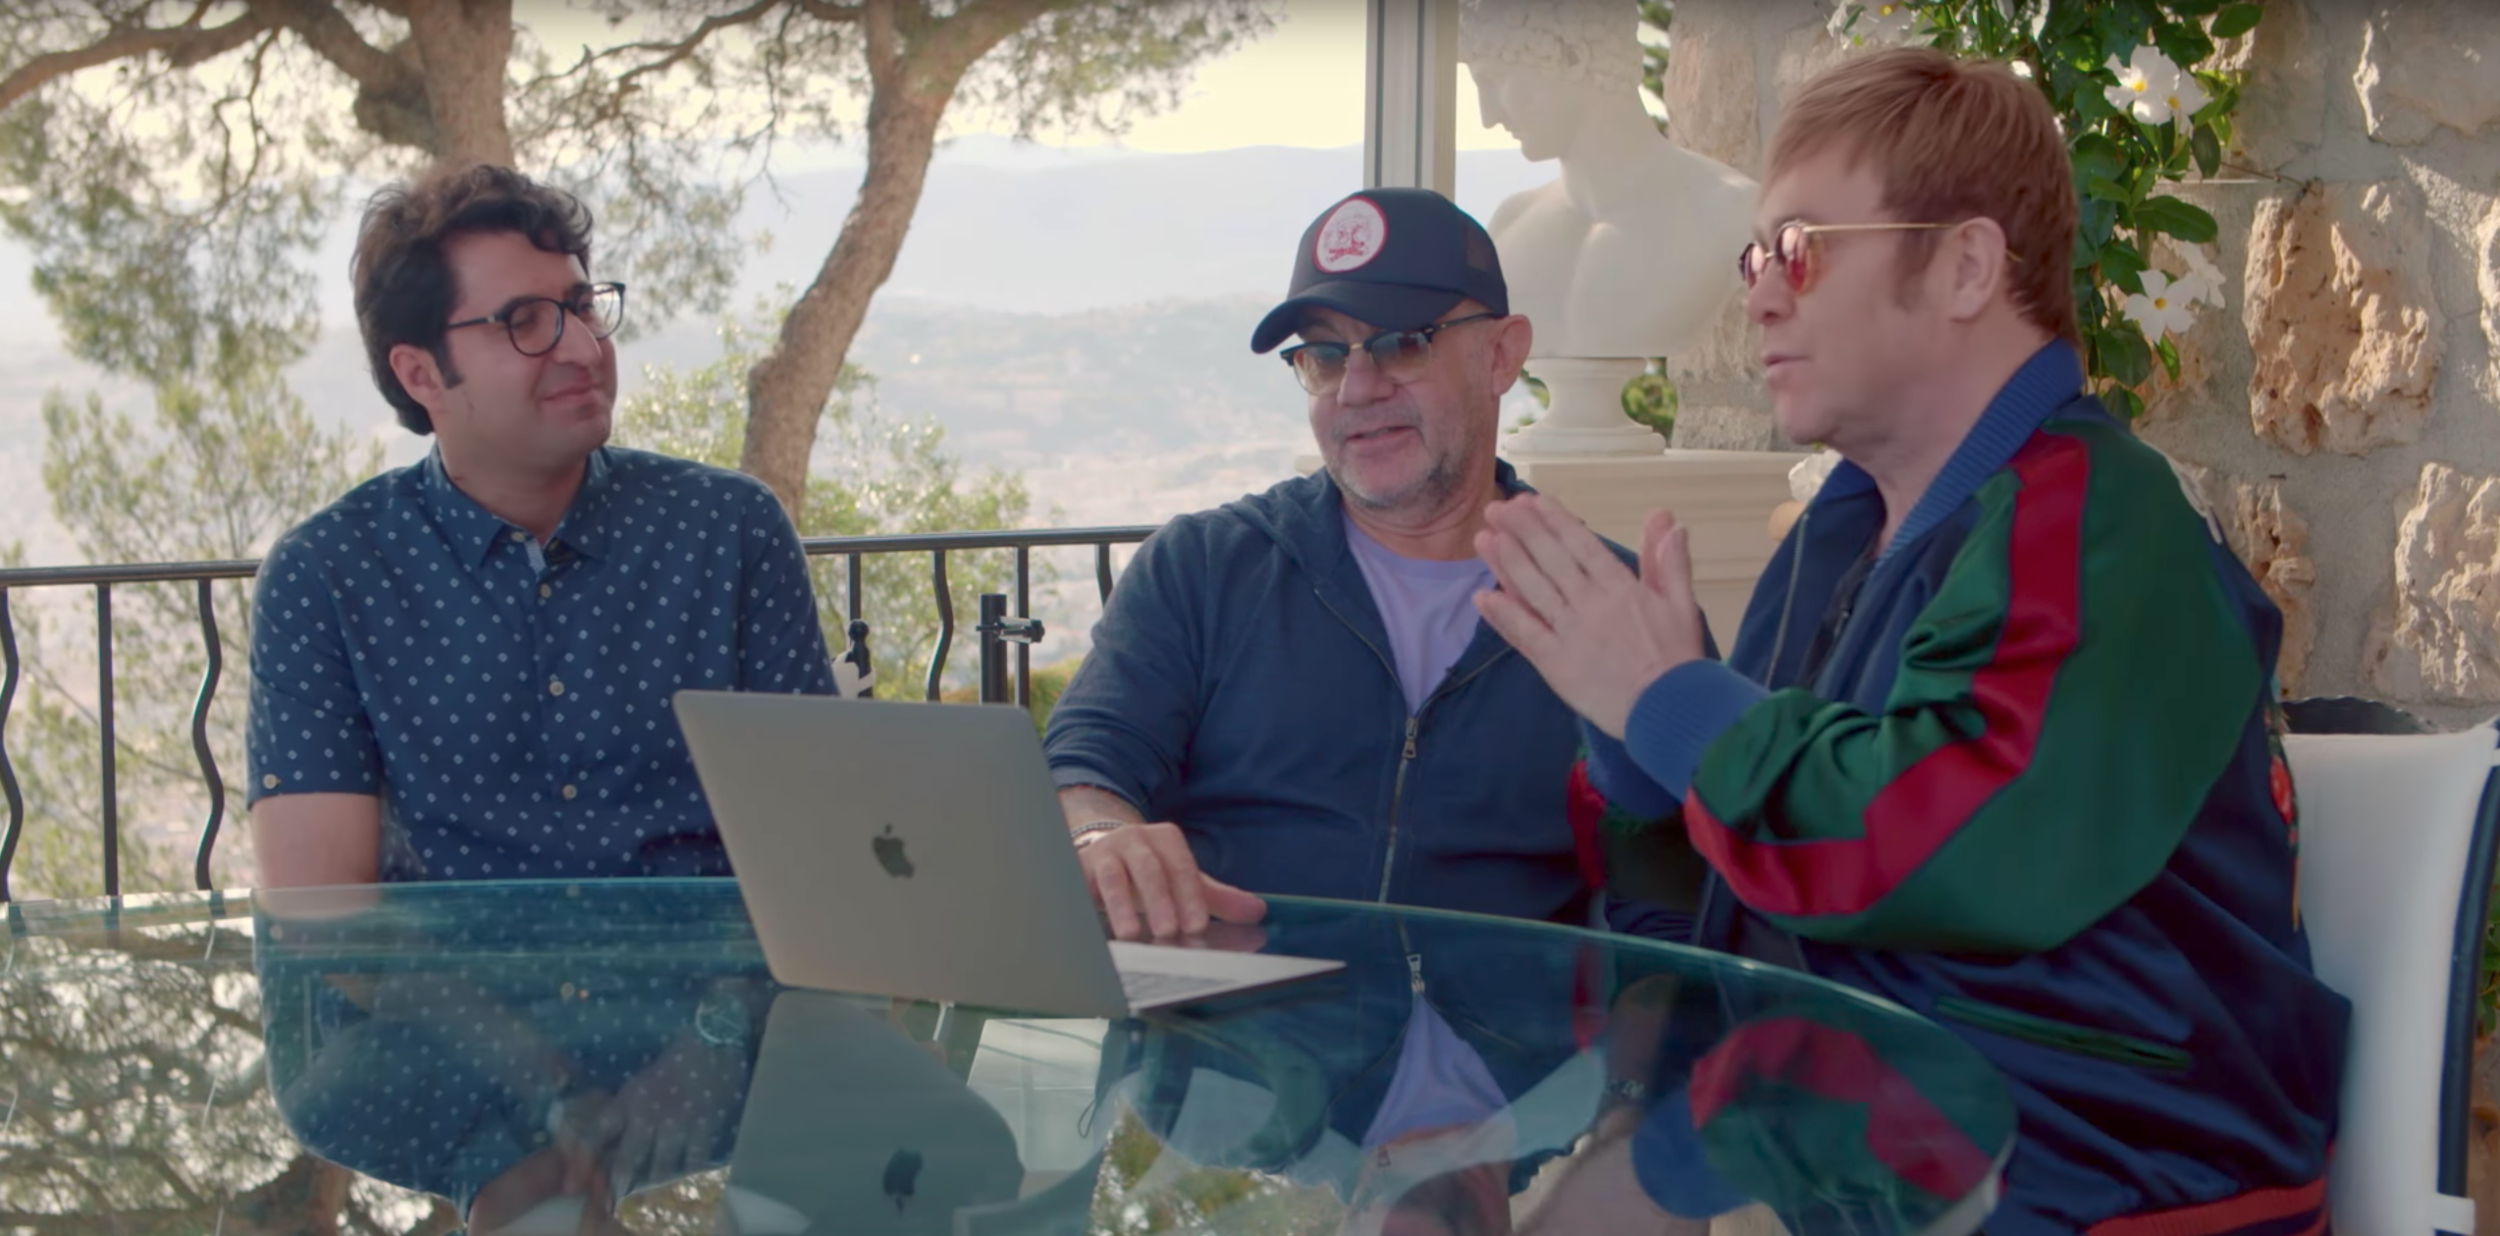 Elton John and Bernie Taupin see Rocket Man for the first time with Majid in Cannes